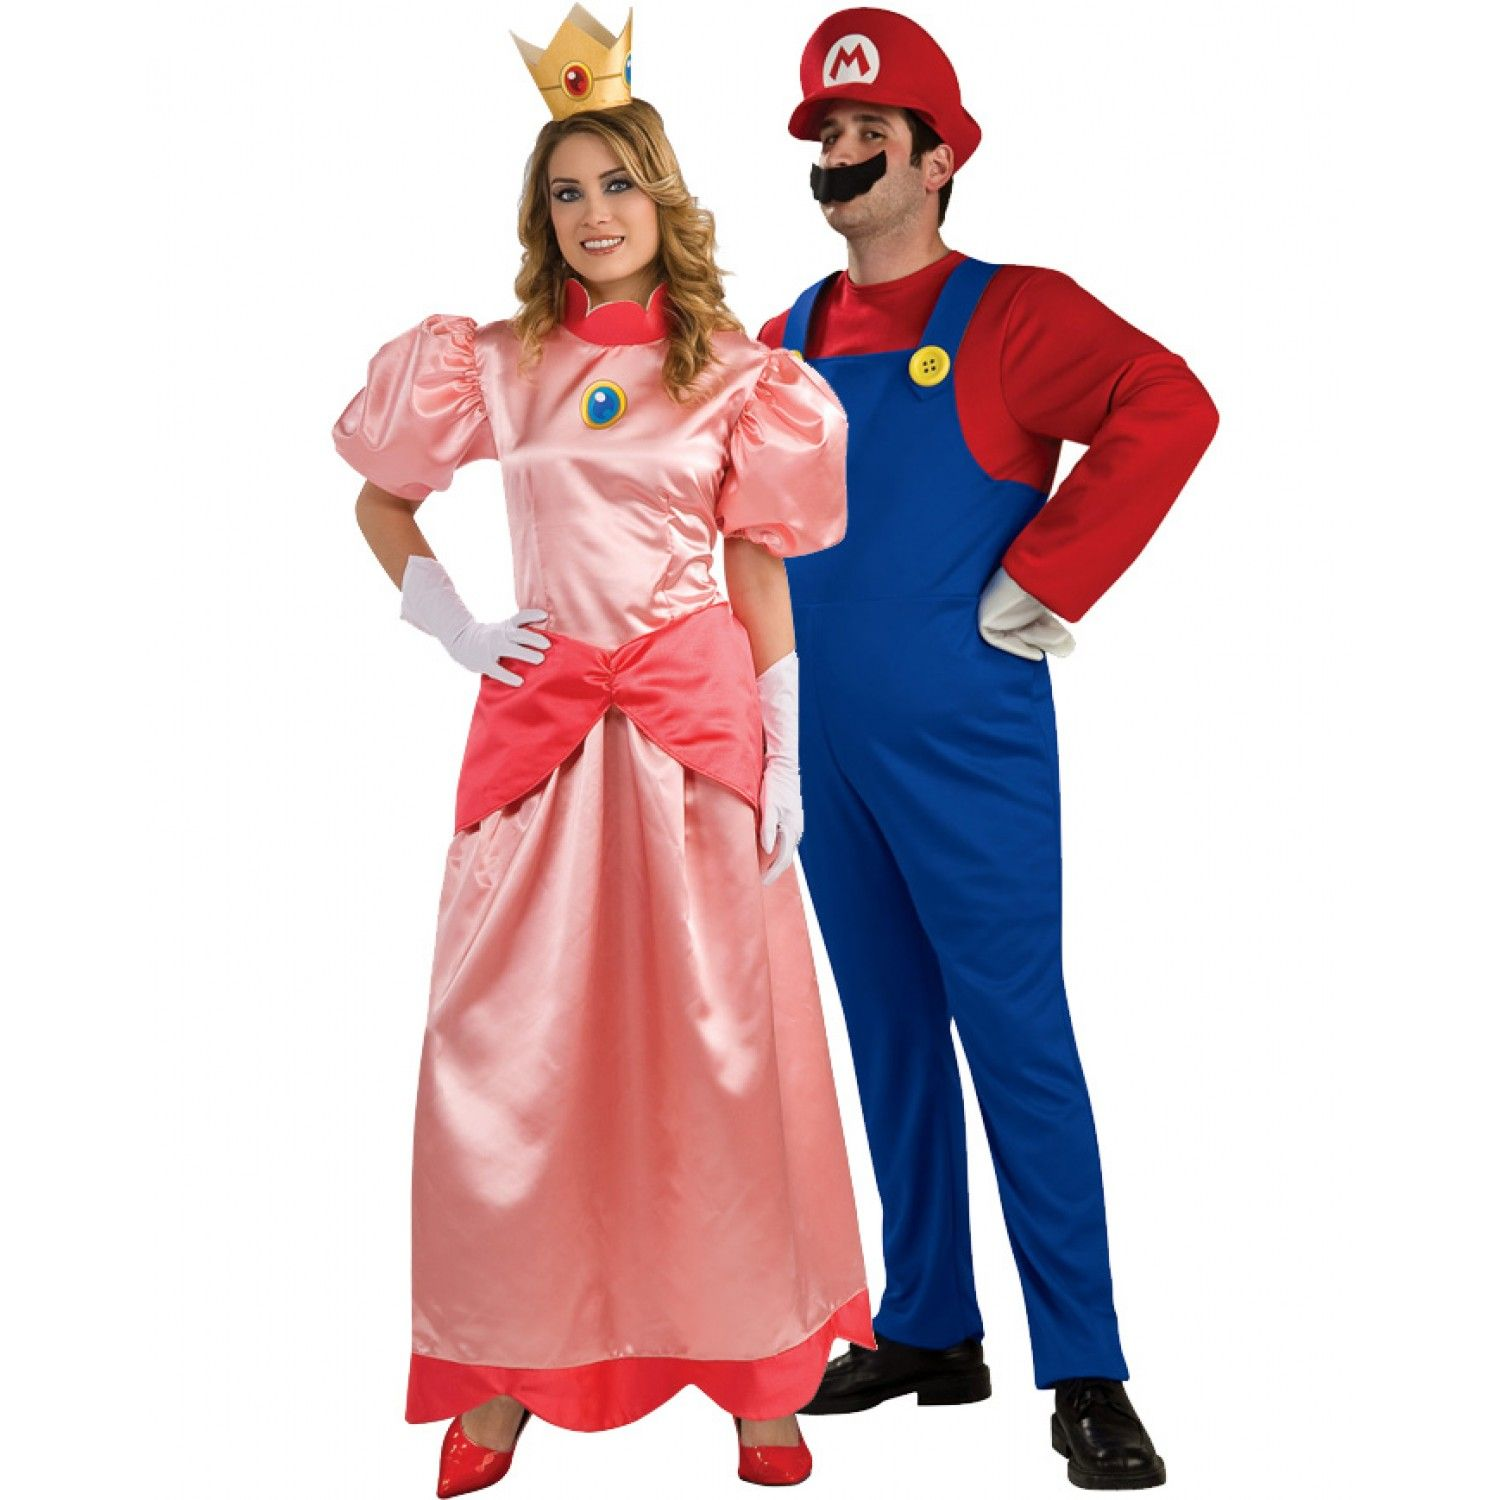 Super Mario and Princess Costume Image | Halloween Party | Pinterest